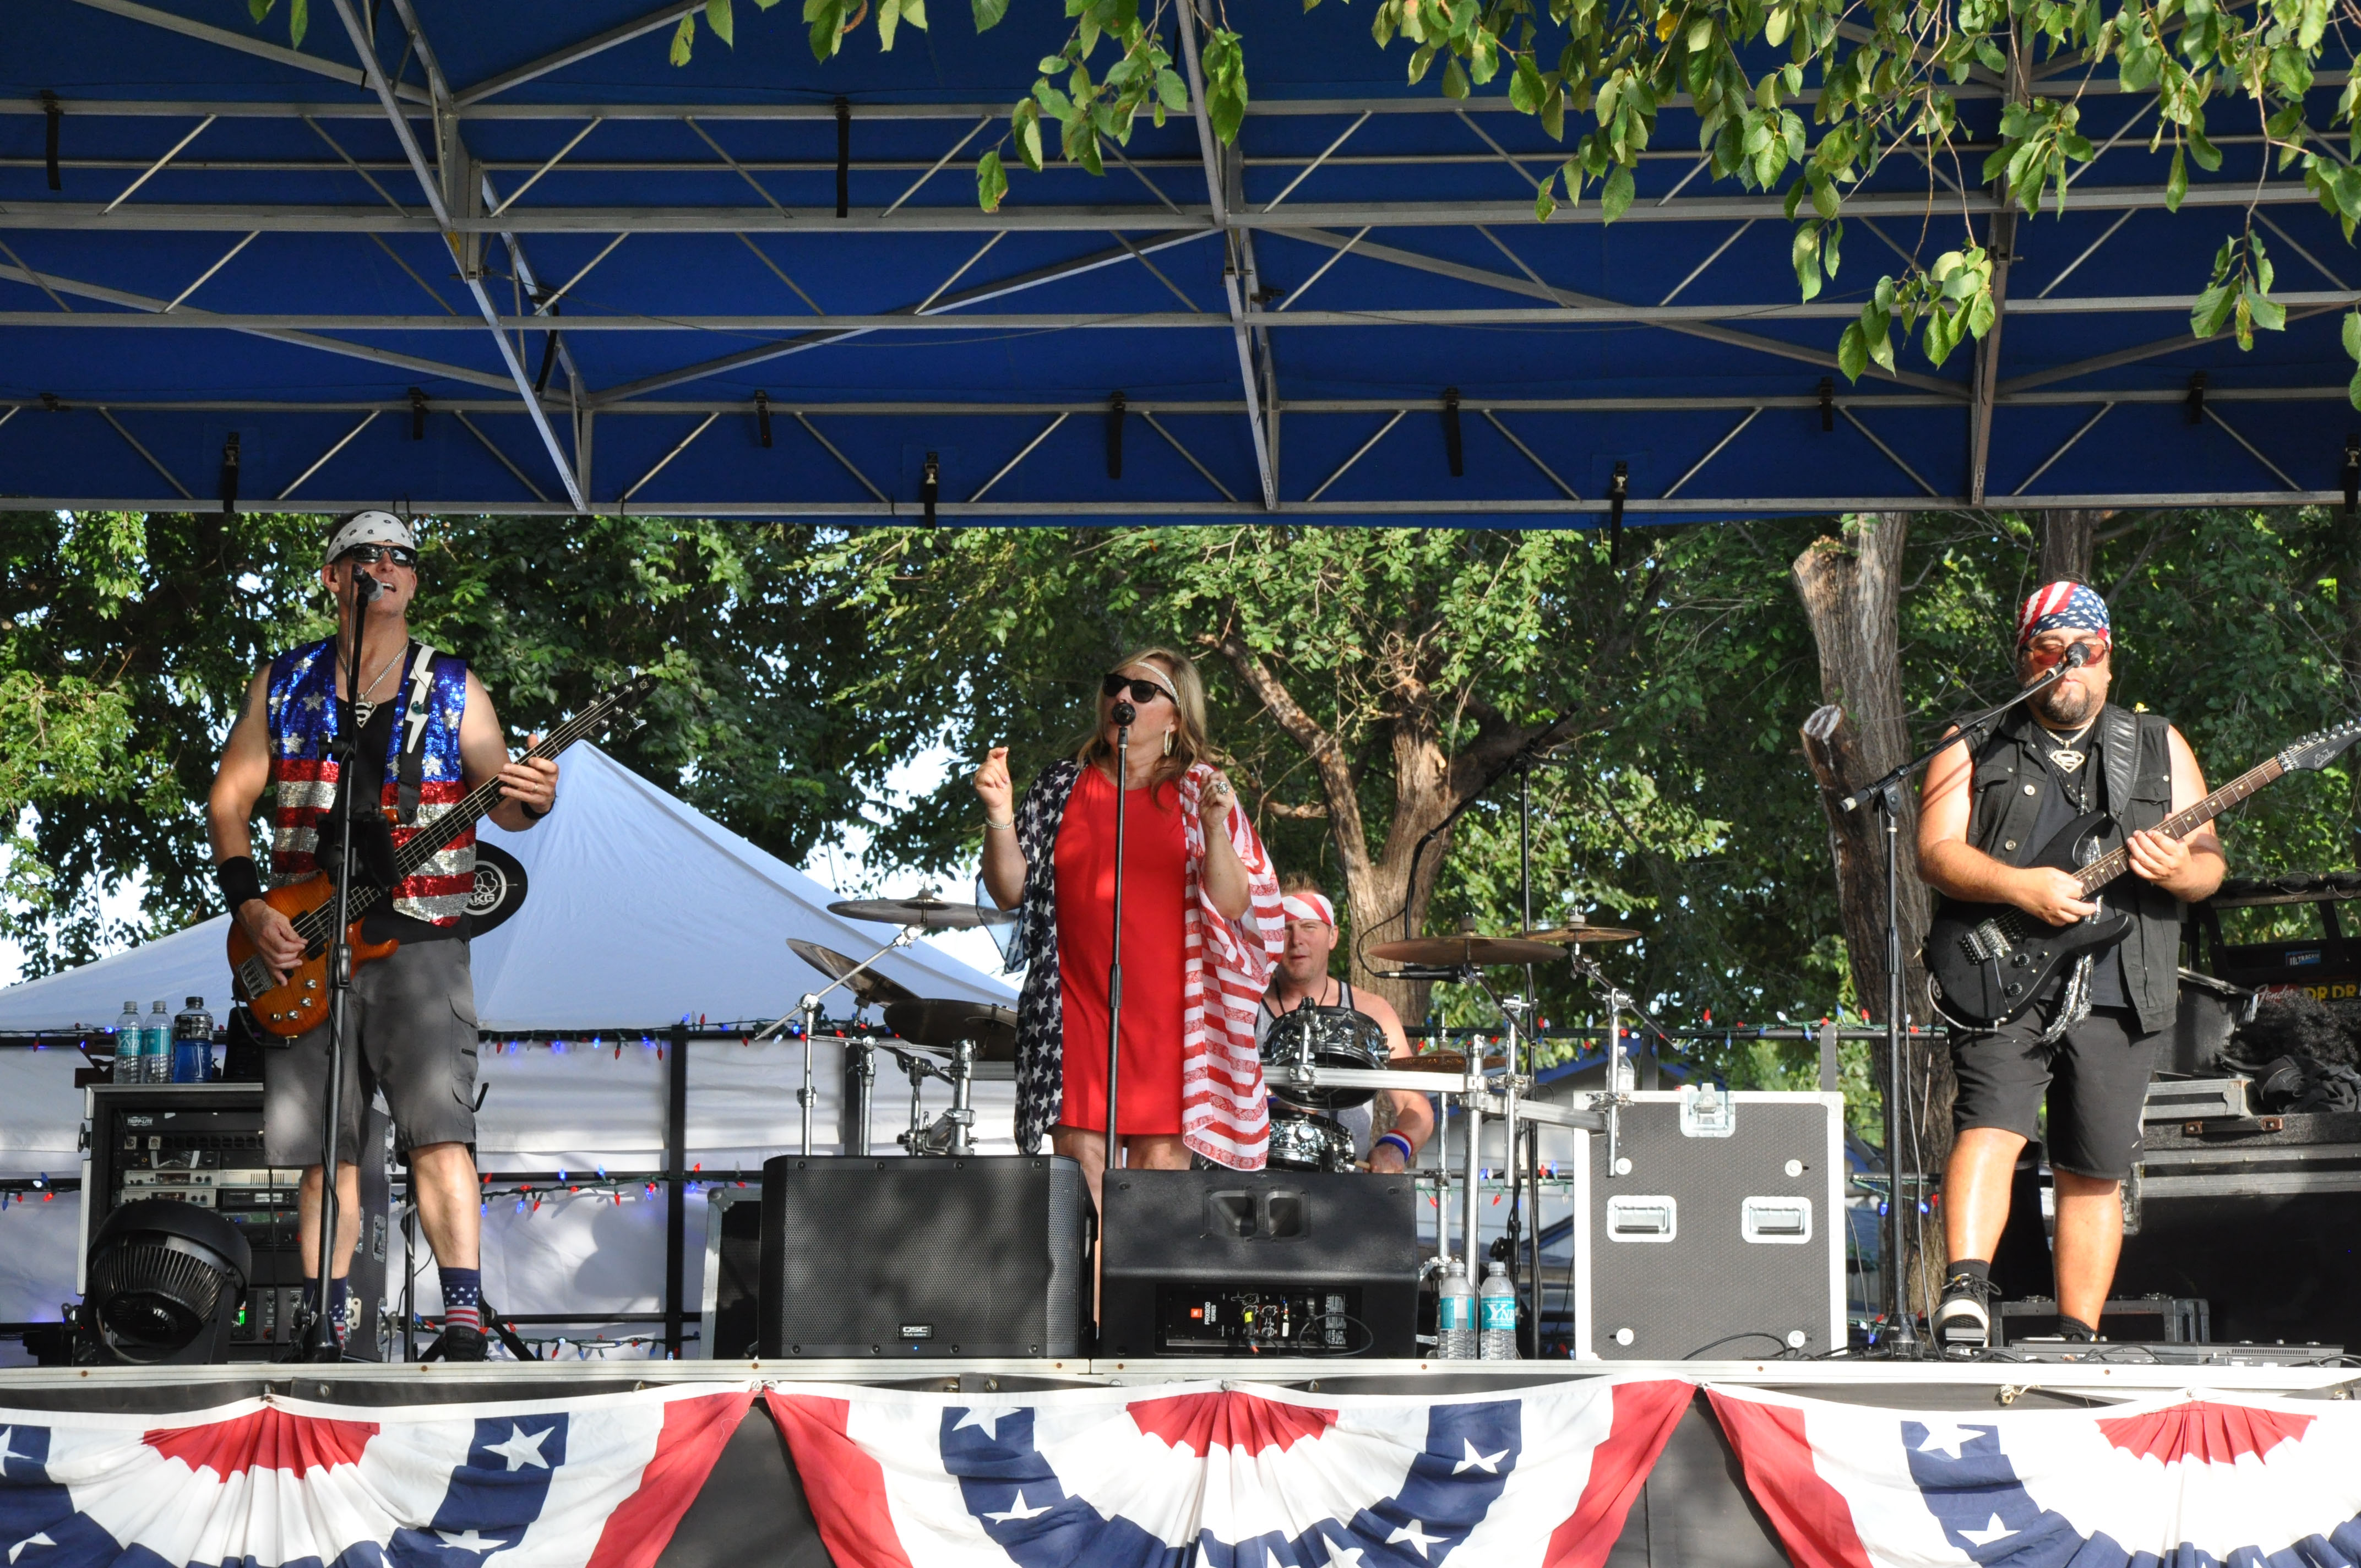 Fireworks, Food and Fun at Yukon's Freedom Fest